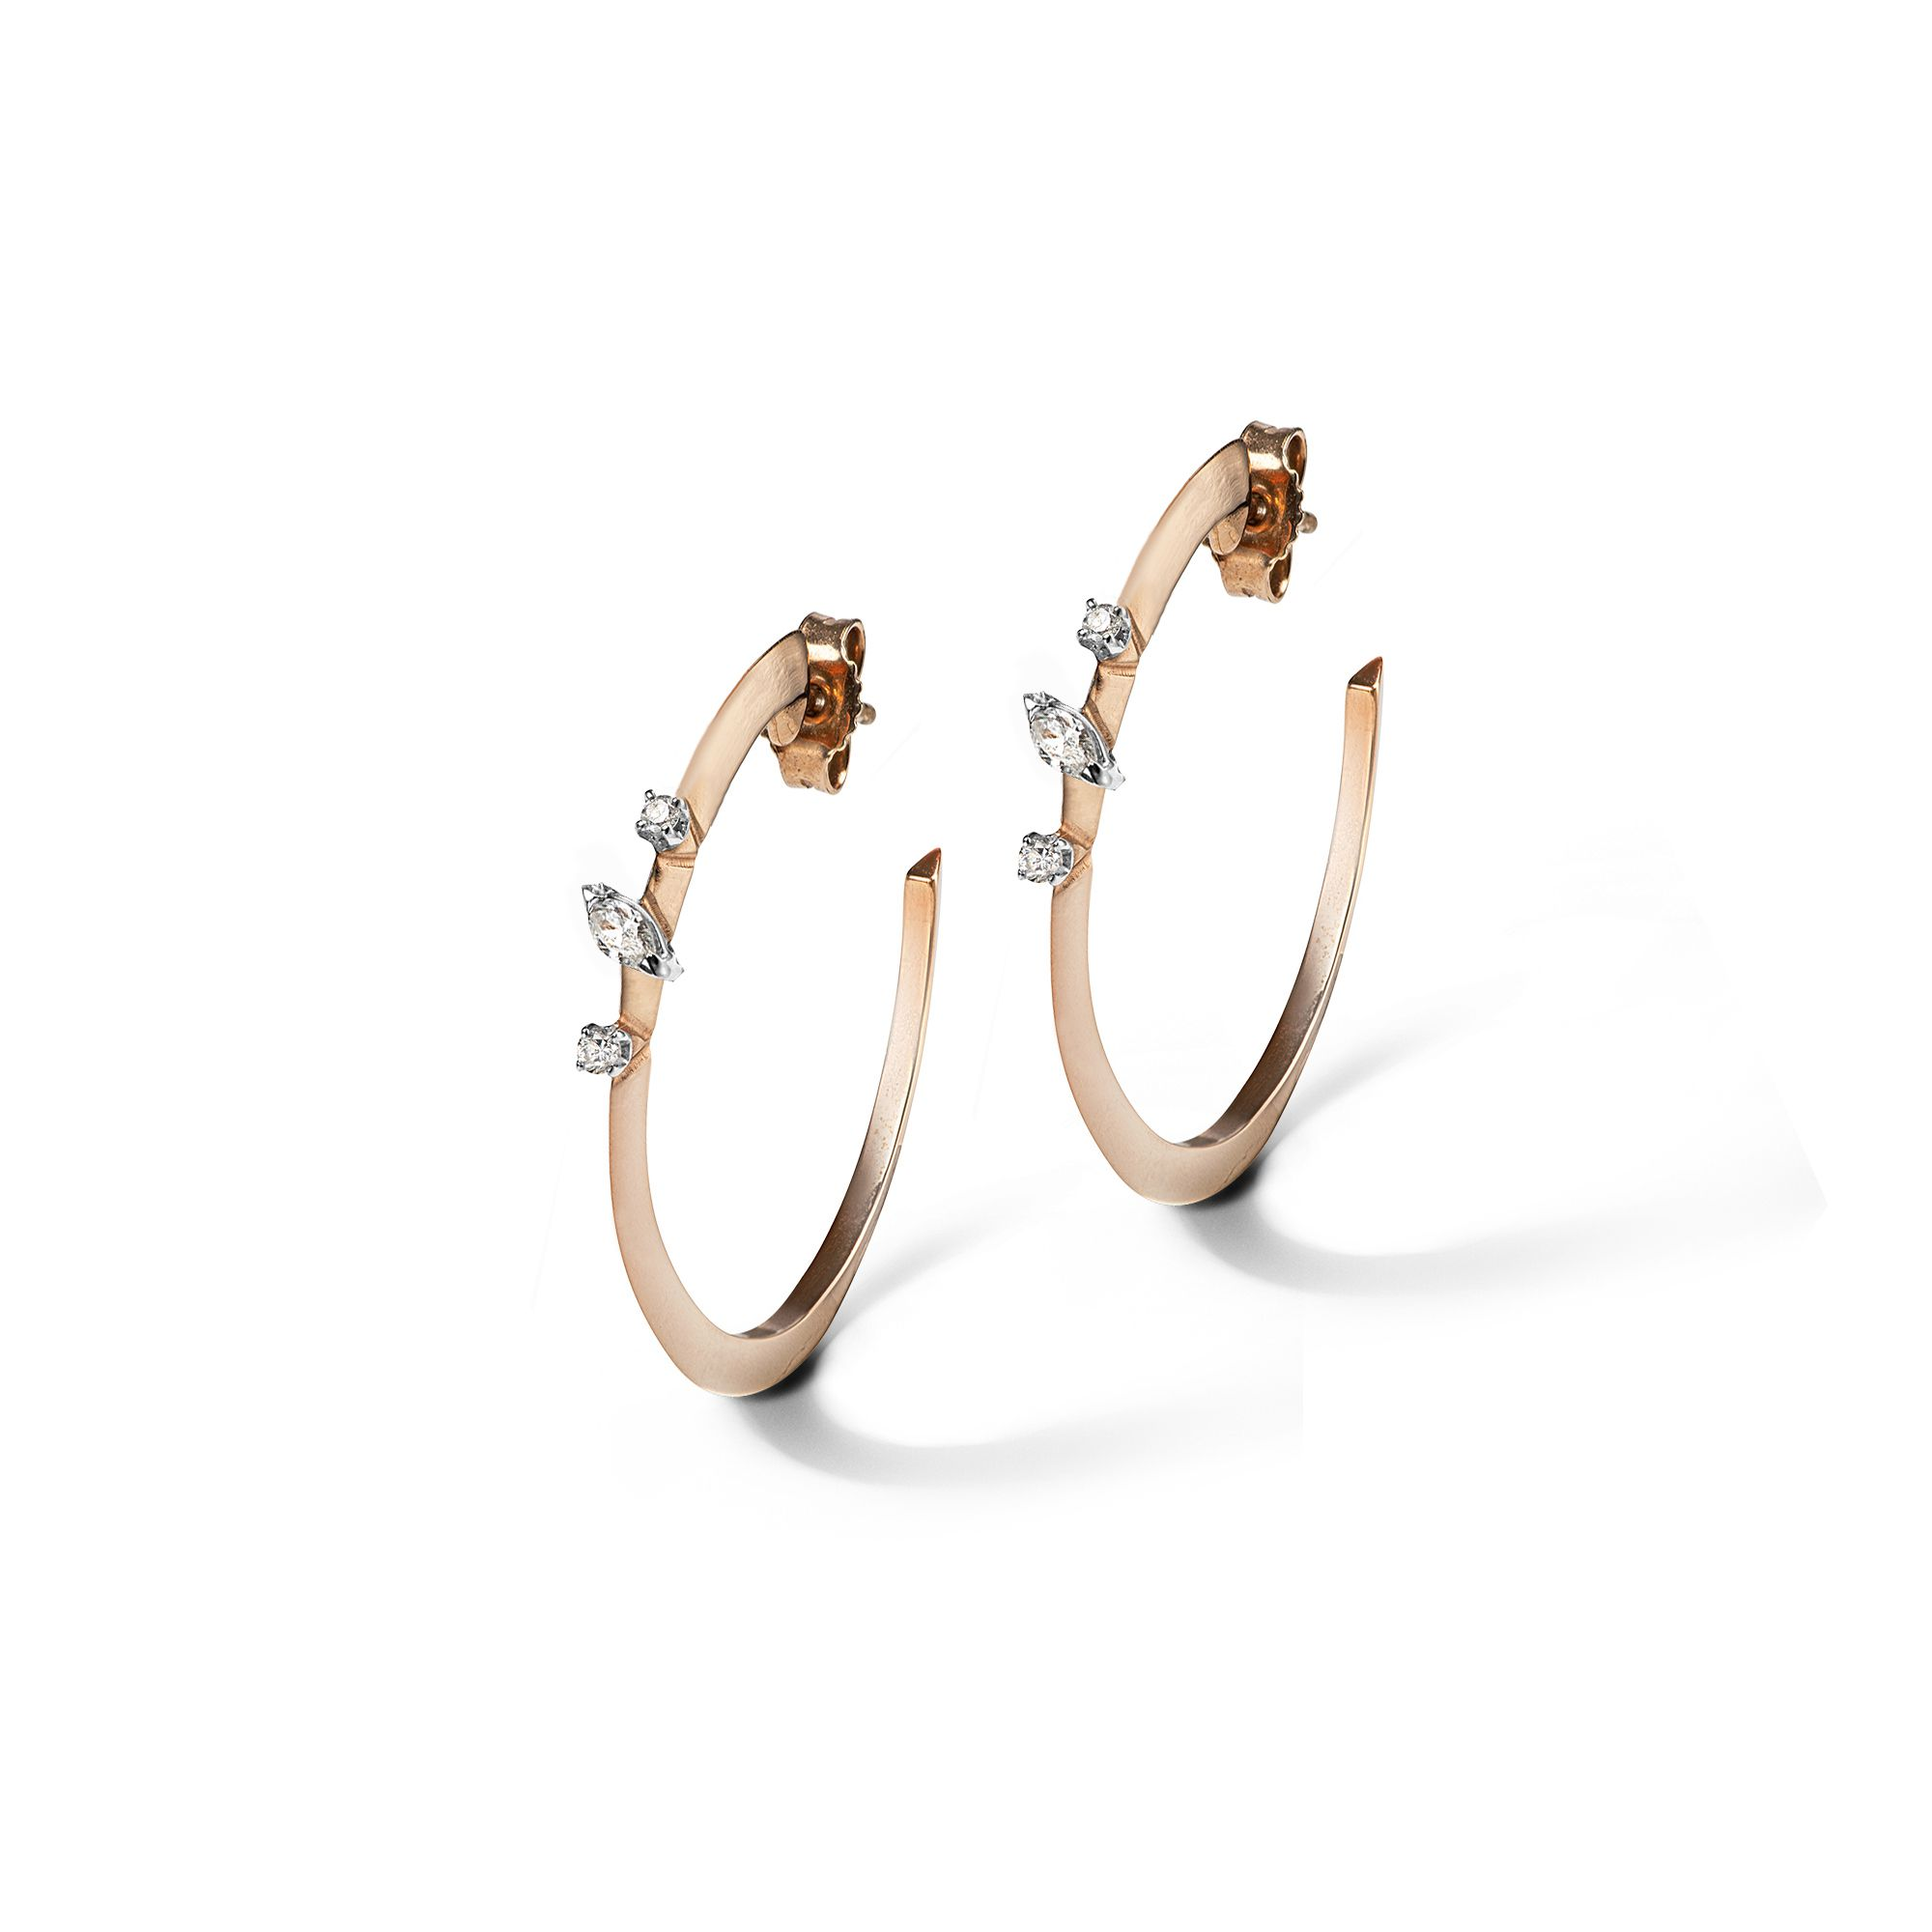 'Balance' hoop earrings Earrings in rose gold and diamonds